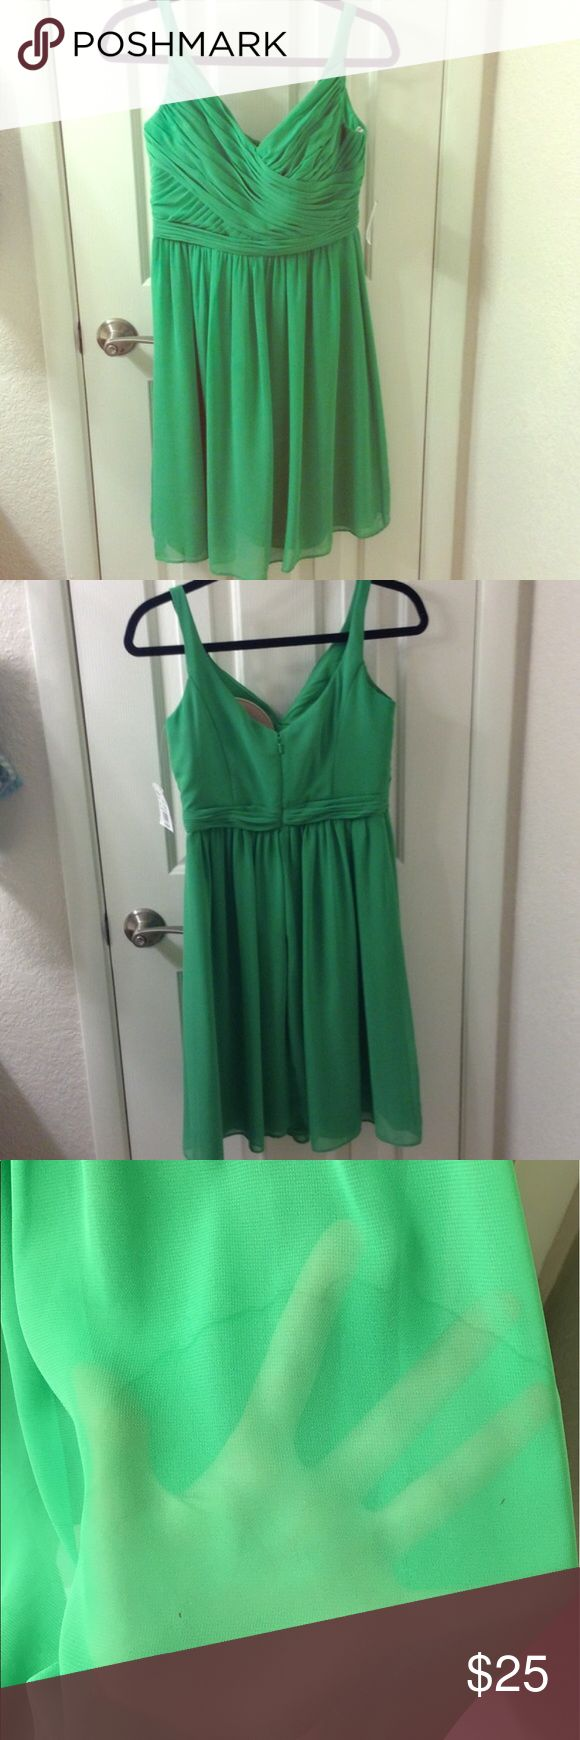 Kelly Green Dress Davids Bridal Kelly Green Dress. This dress is new with tags. Has hard water marks and staining from being in my closet (see pictures above.) stains will come out if dry cleaned. Has removable cups. Size 4. Fast shipping and bundle items together to save extra money😍 David's Bridal Dresses